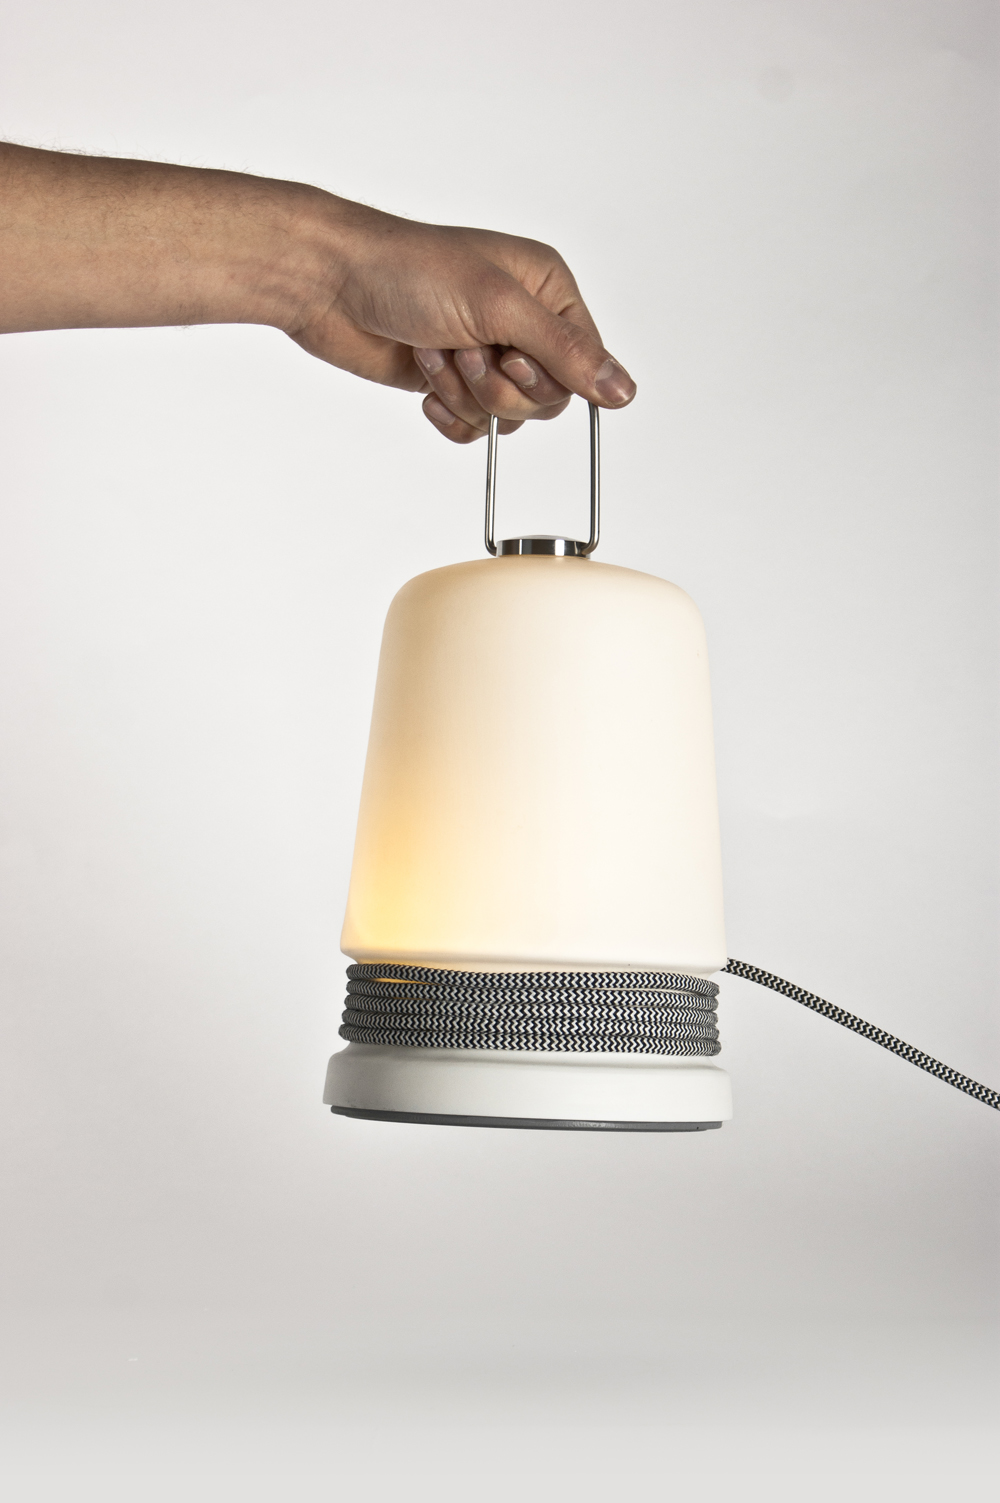 Table Cable Light designed by Patrick Hartog